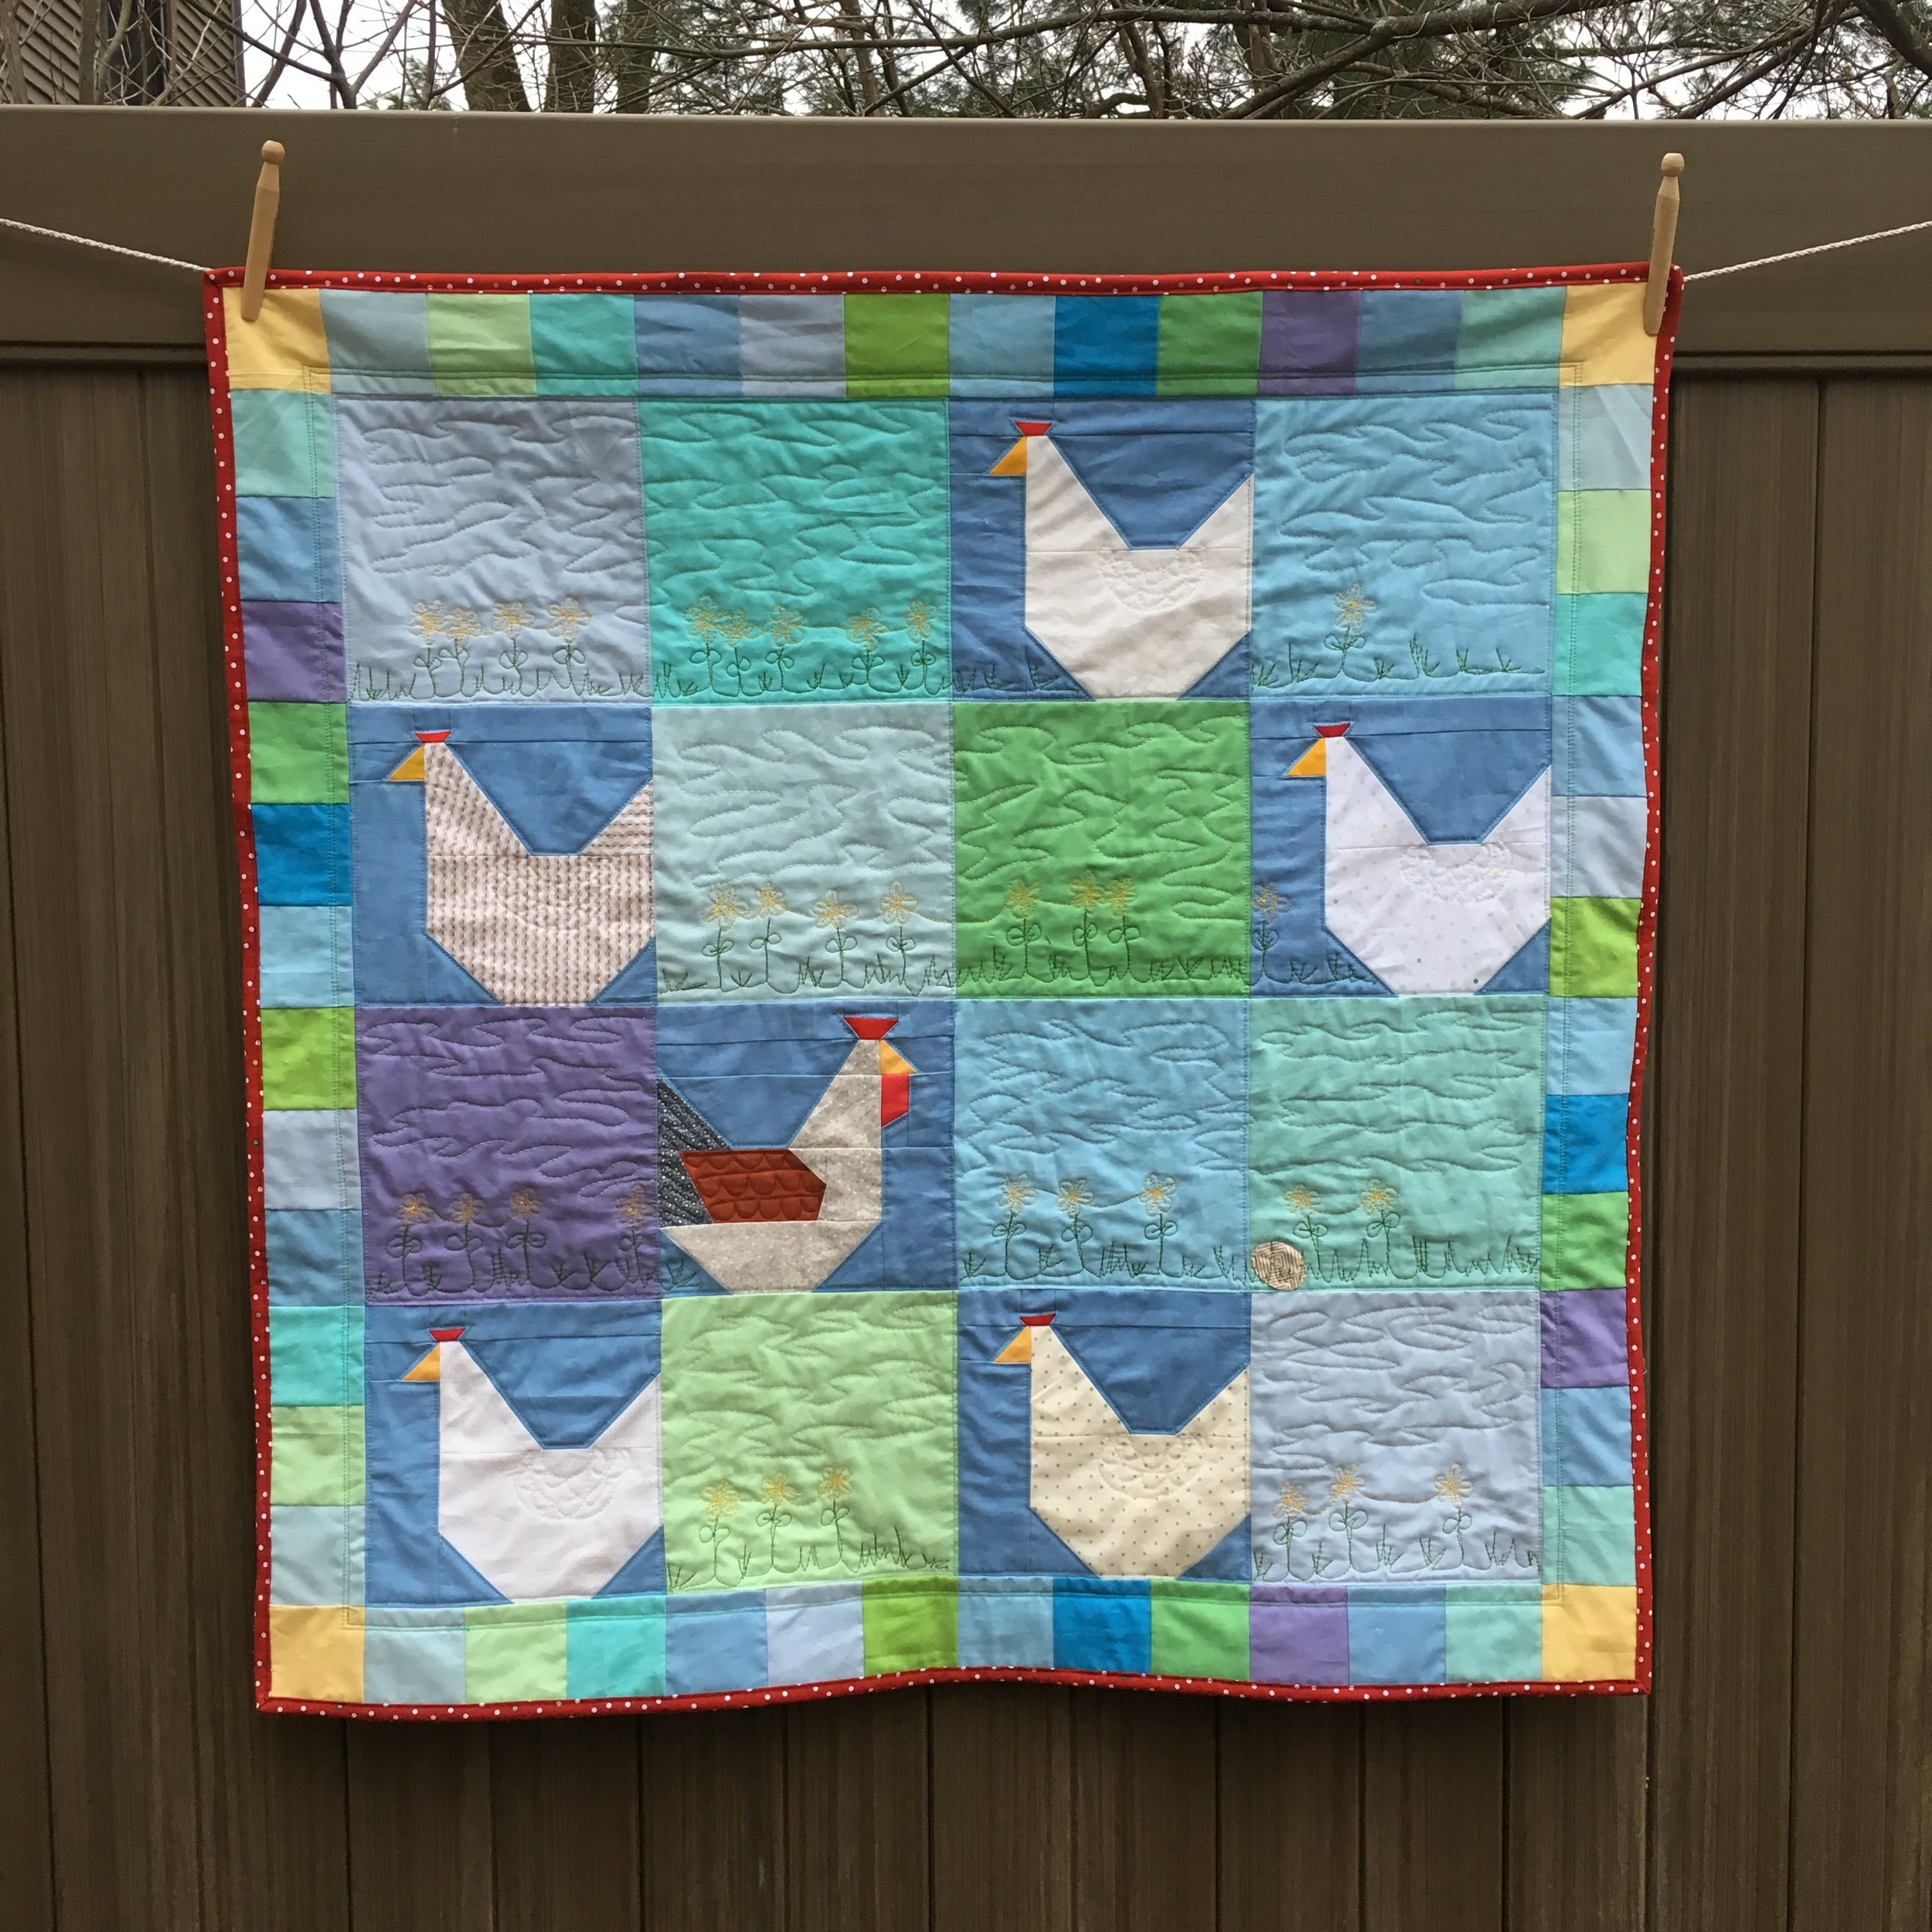 Free Range Chicken Quilt 37 inches square